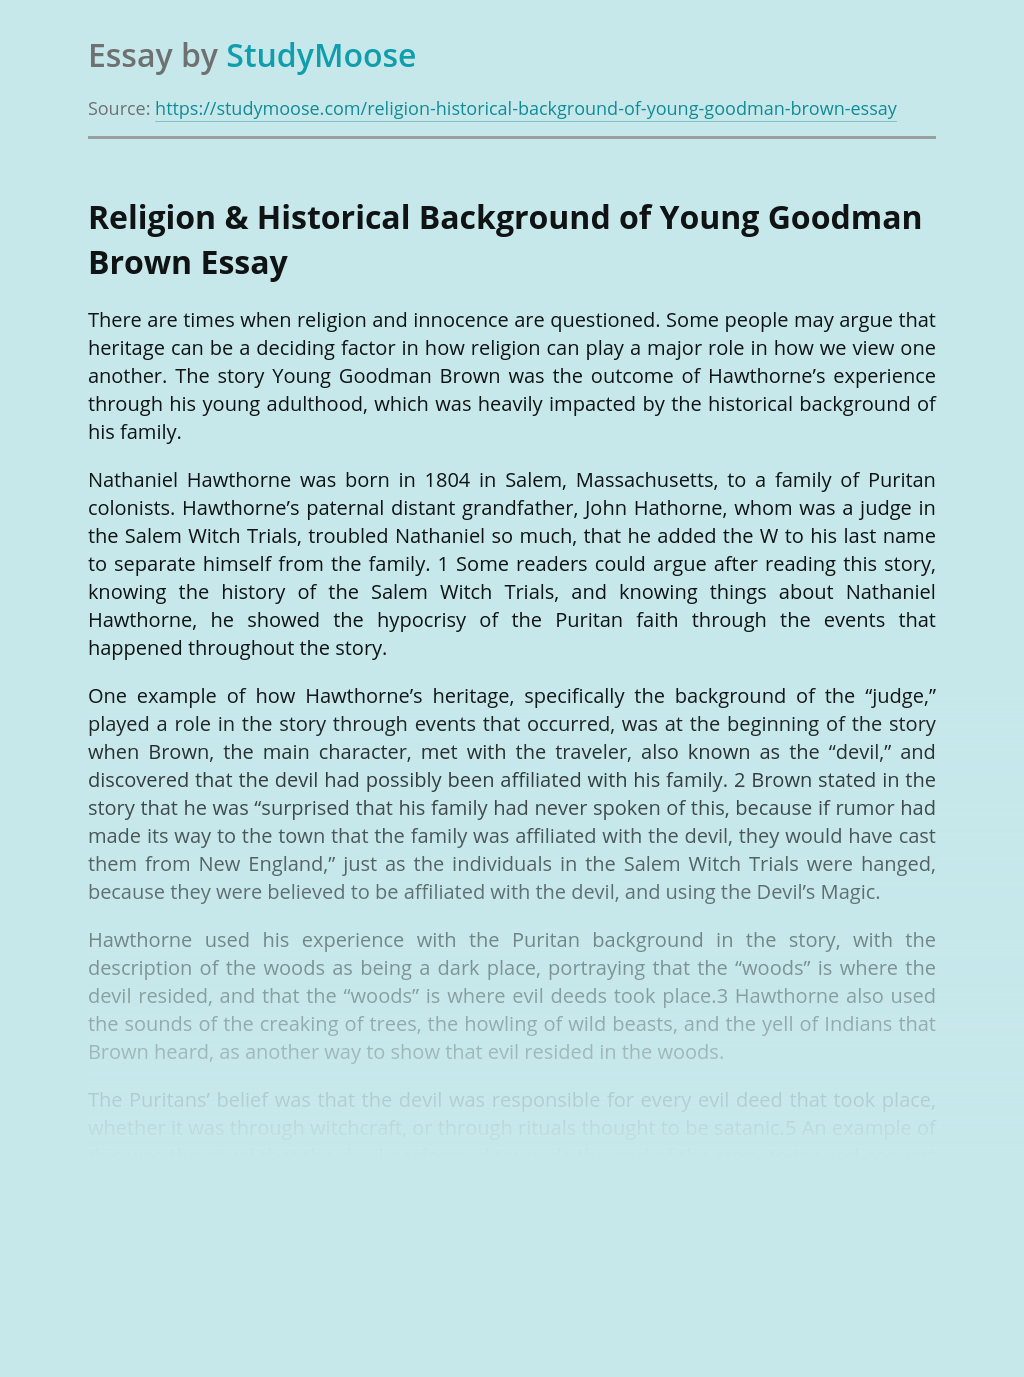 Religion & Historical Background of Young Goodman Brown